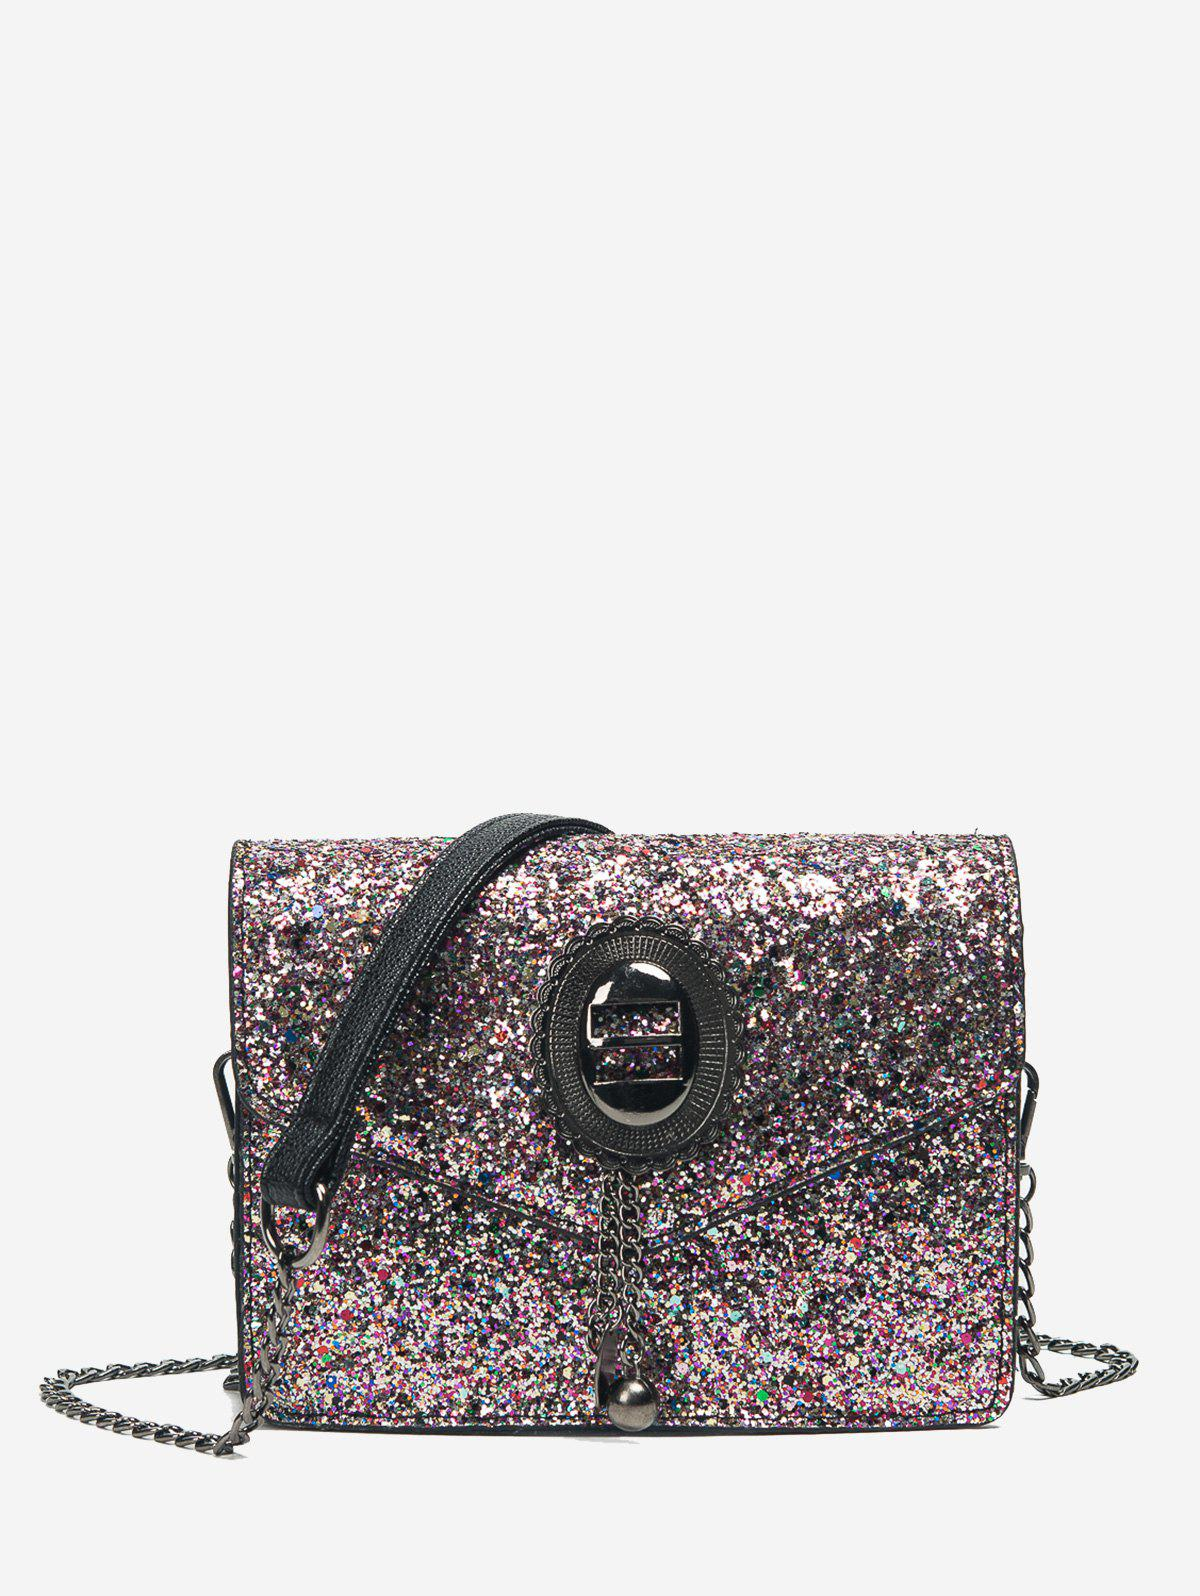 Sequin Chain Crossbody Bag - PINK